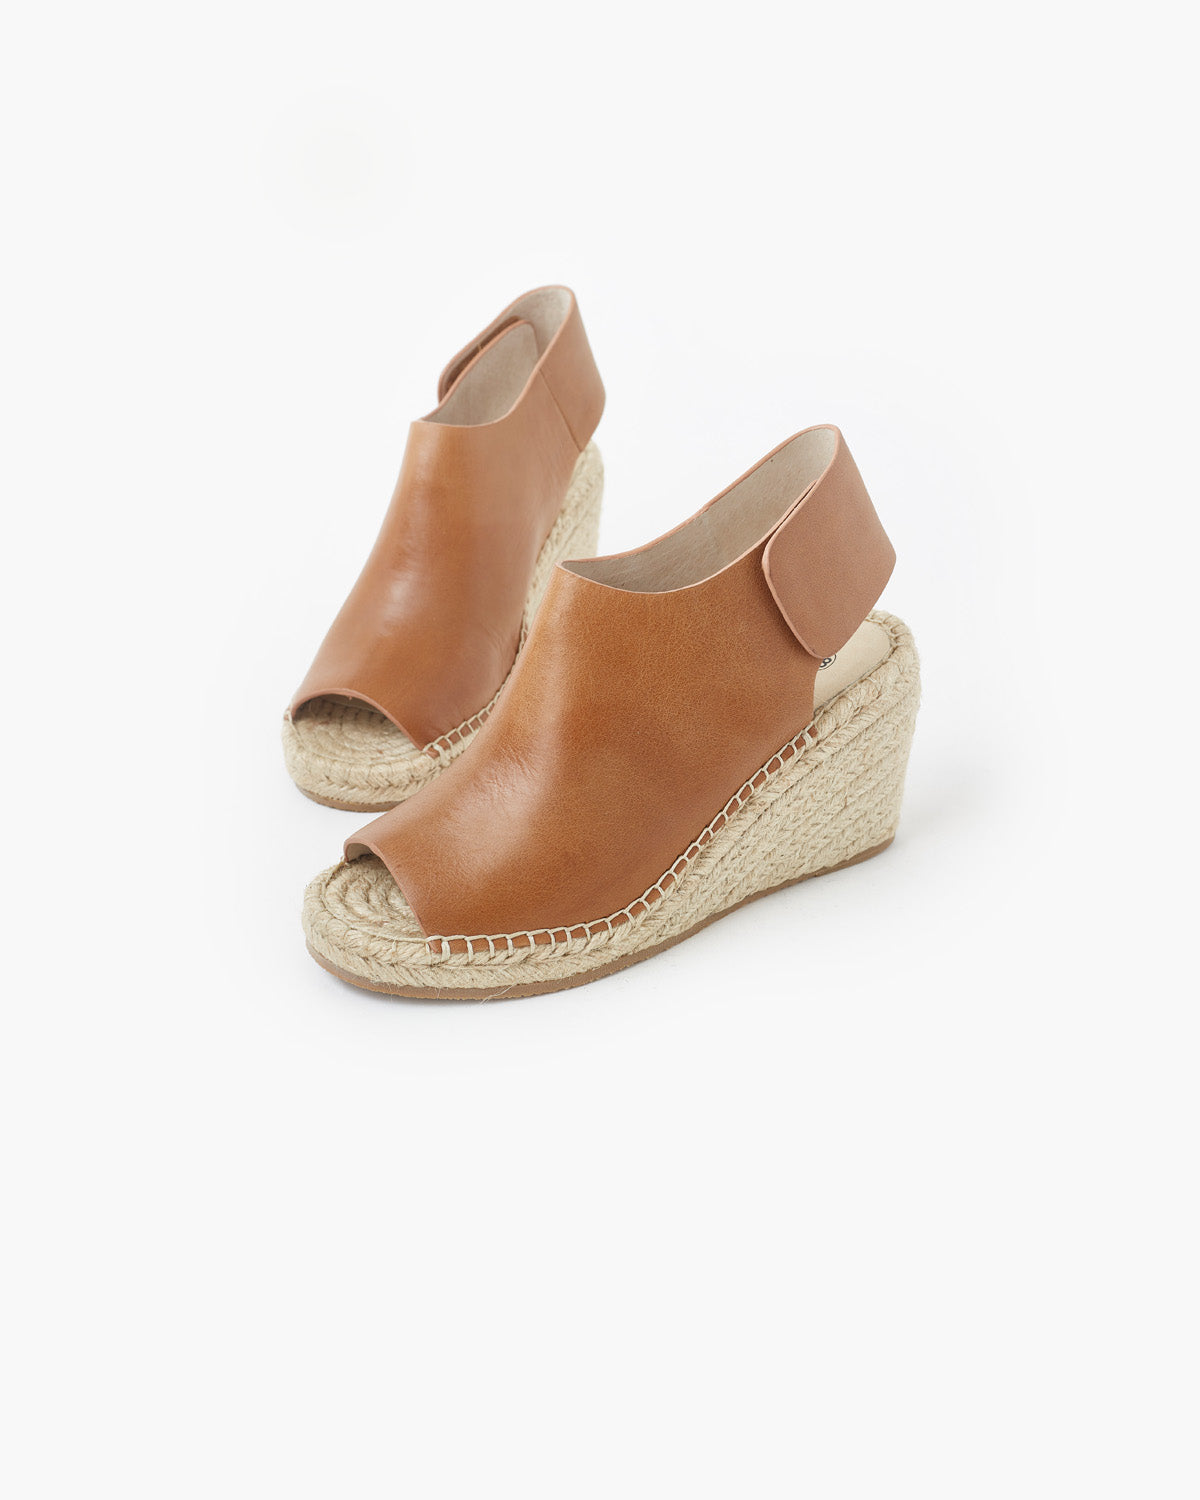 Vamp Leather Wedge - Tan